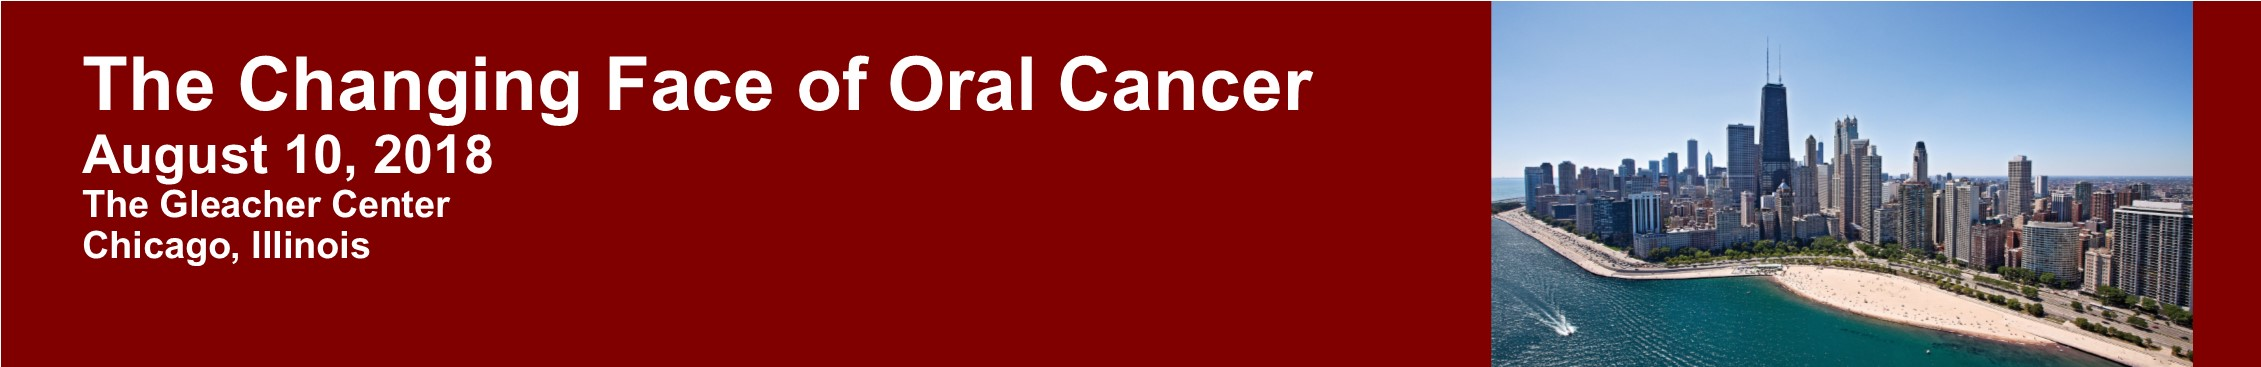 The Changing Face of Oral Cancer